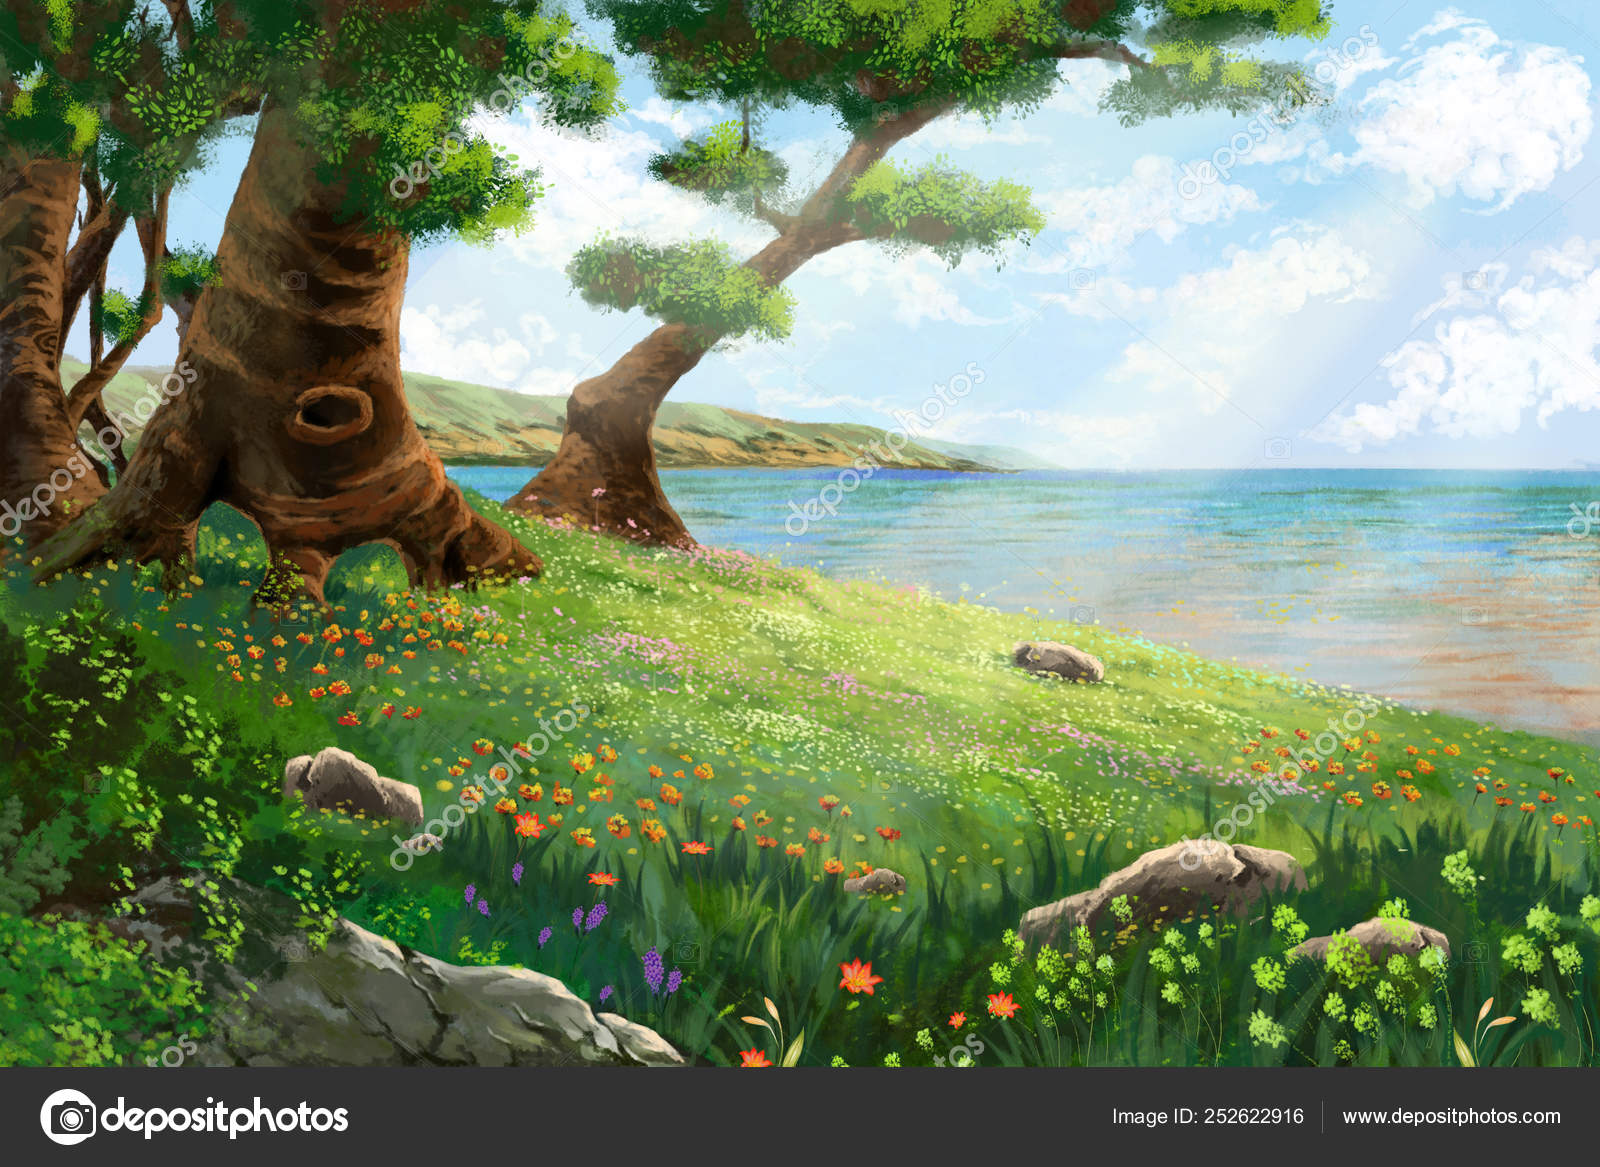 River Bank Flowers Trees Video Games Digital Artwork Concept Illustration Stock Photo C Nextmars 252622916 Learn how to draw a complex cartoon tree using this fun tutorial made using a vector application. river bank flowers trees video games digital artwork concept illustration stock photo c nextmars 252622916